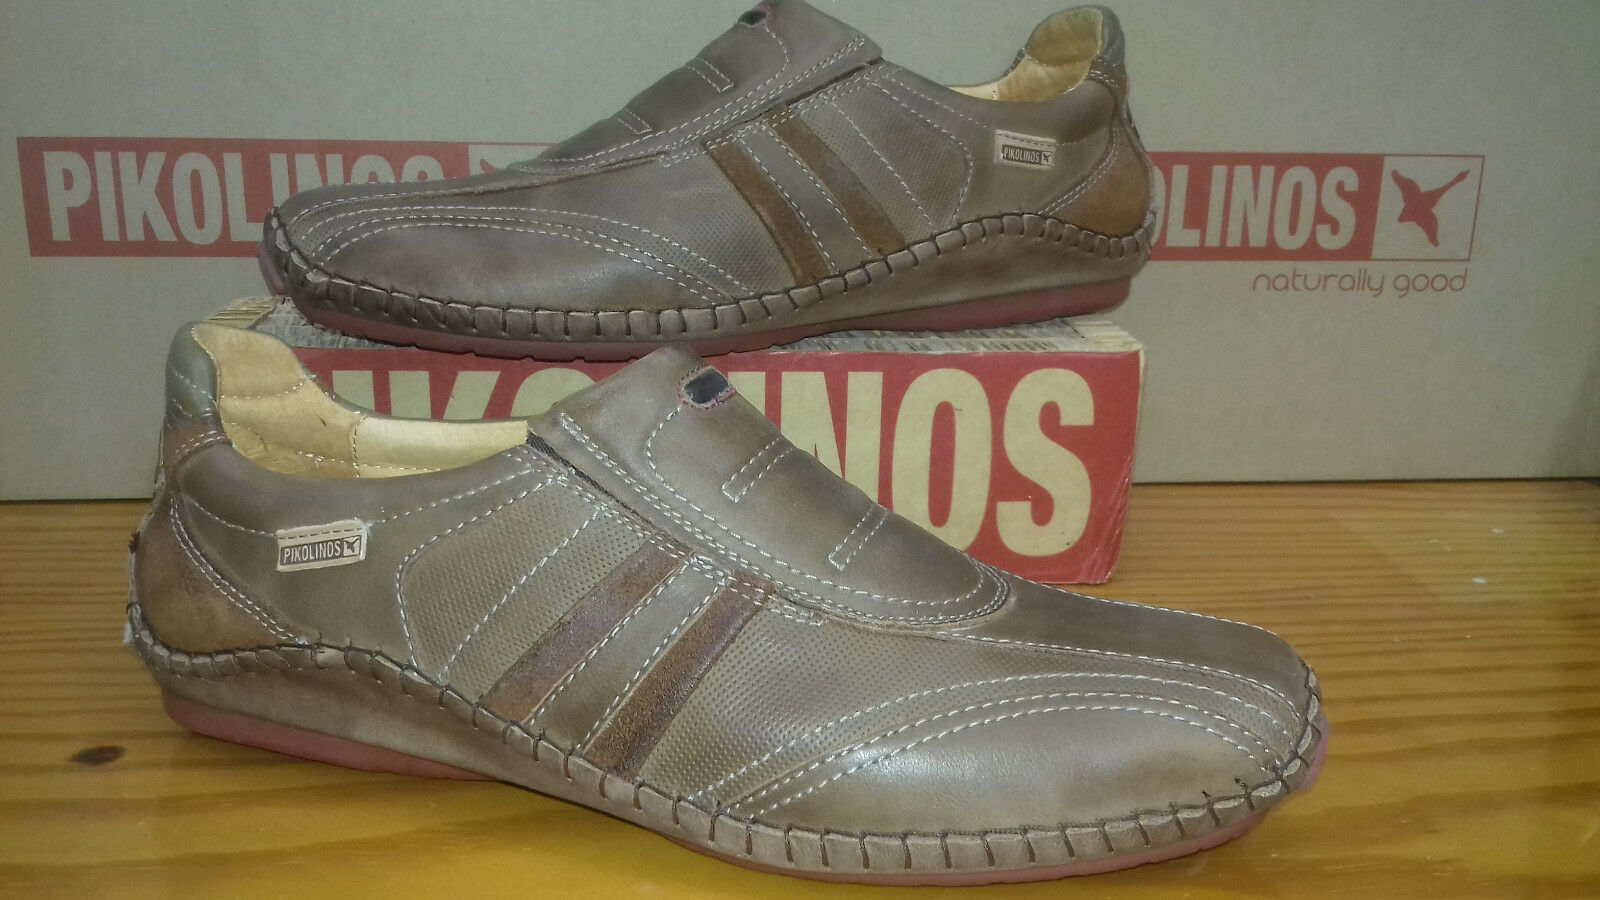 Pikolinos shoes footwear 08J-5822BF shoes calzado leather natural leather slip